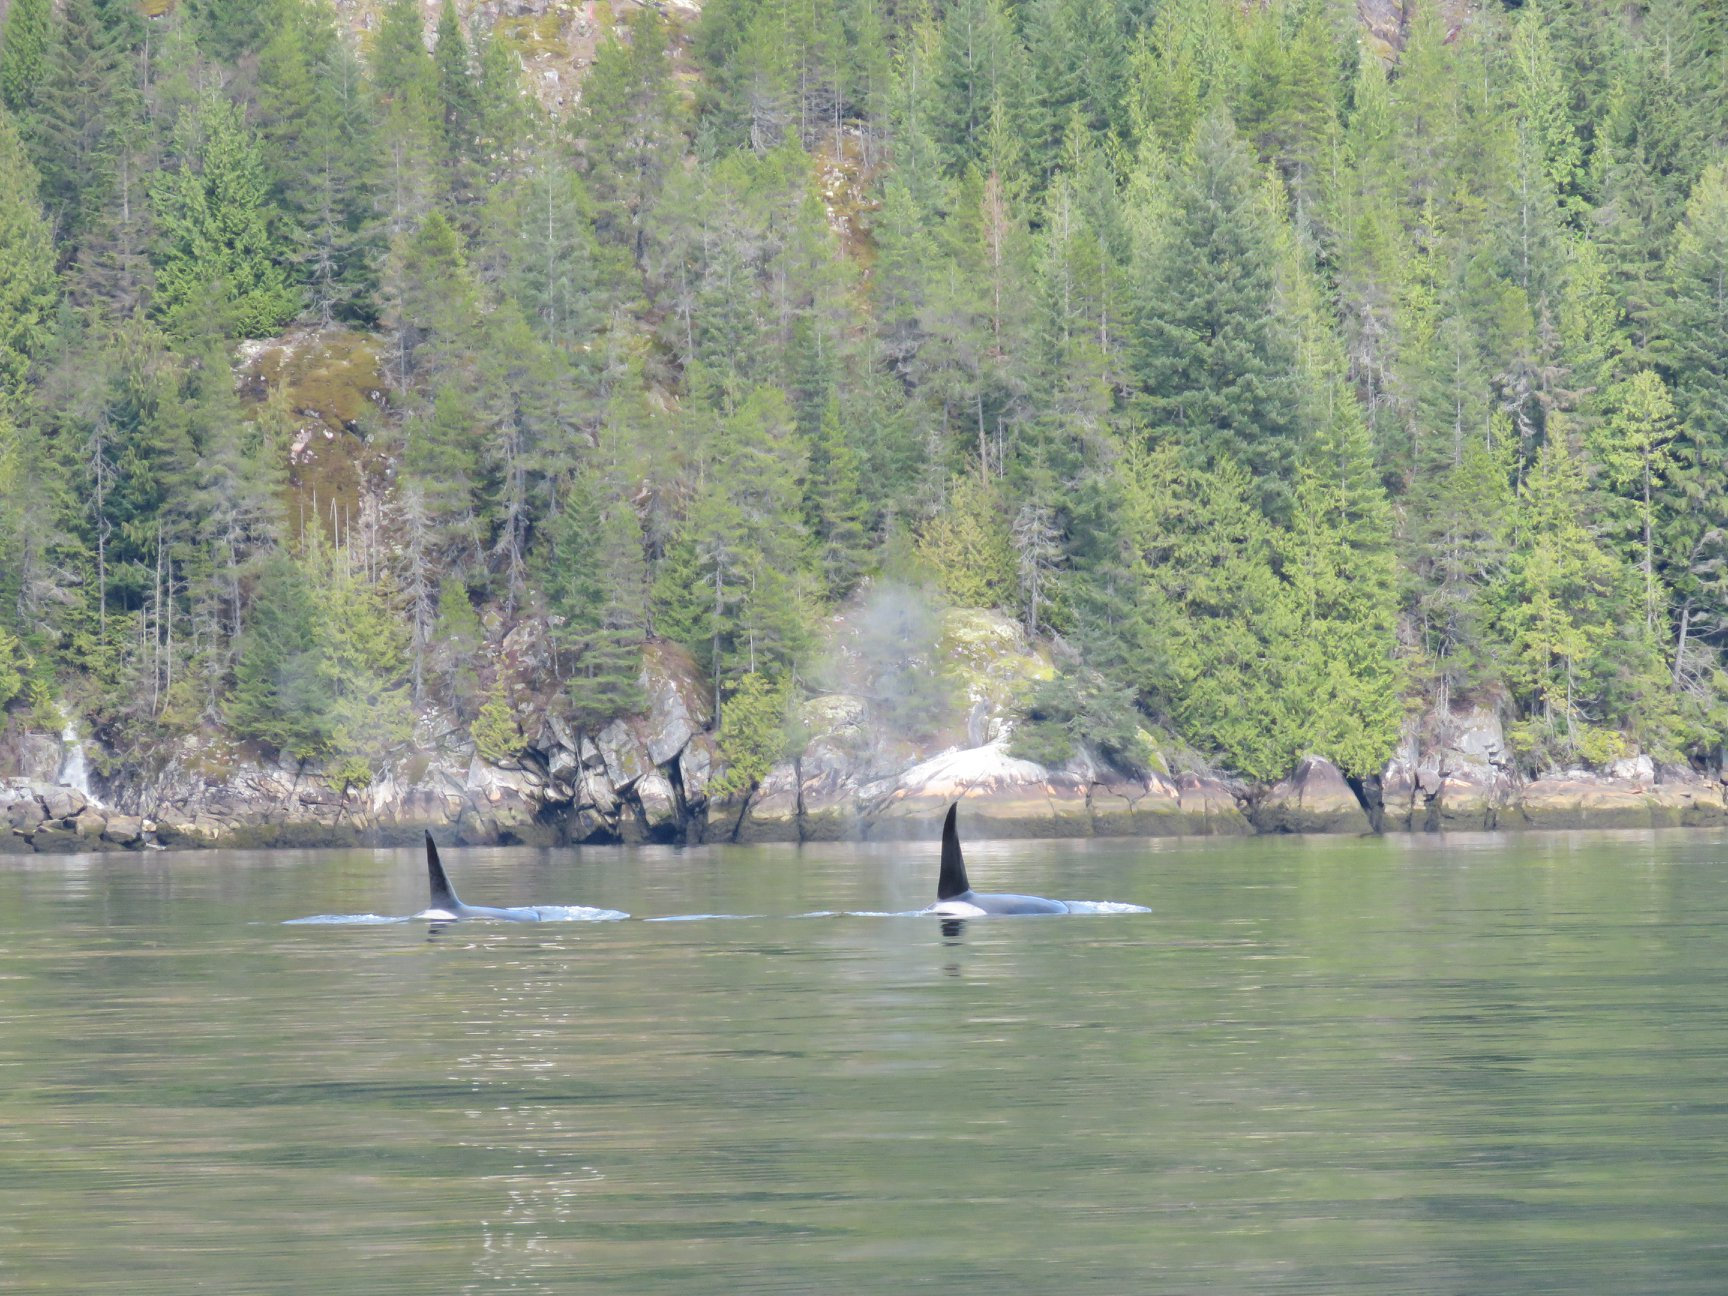 Orca brothers surfacing infront of a steep hillside of Douglas firs and Cedar trees. Photo by Rodrigo Menezes.